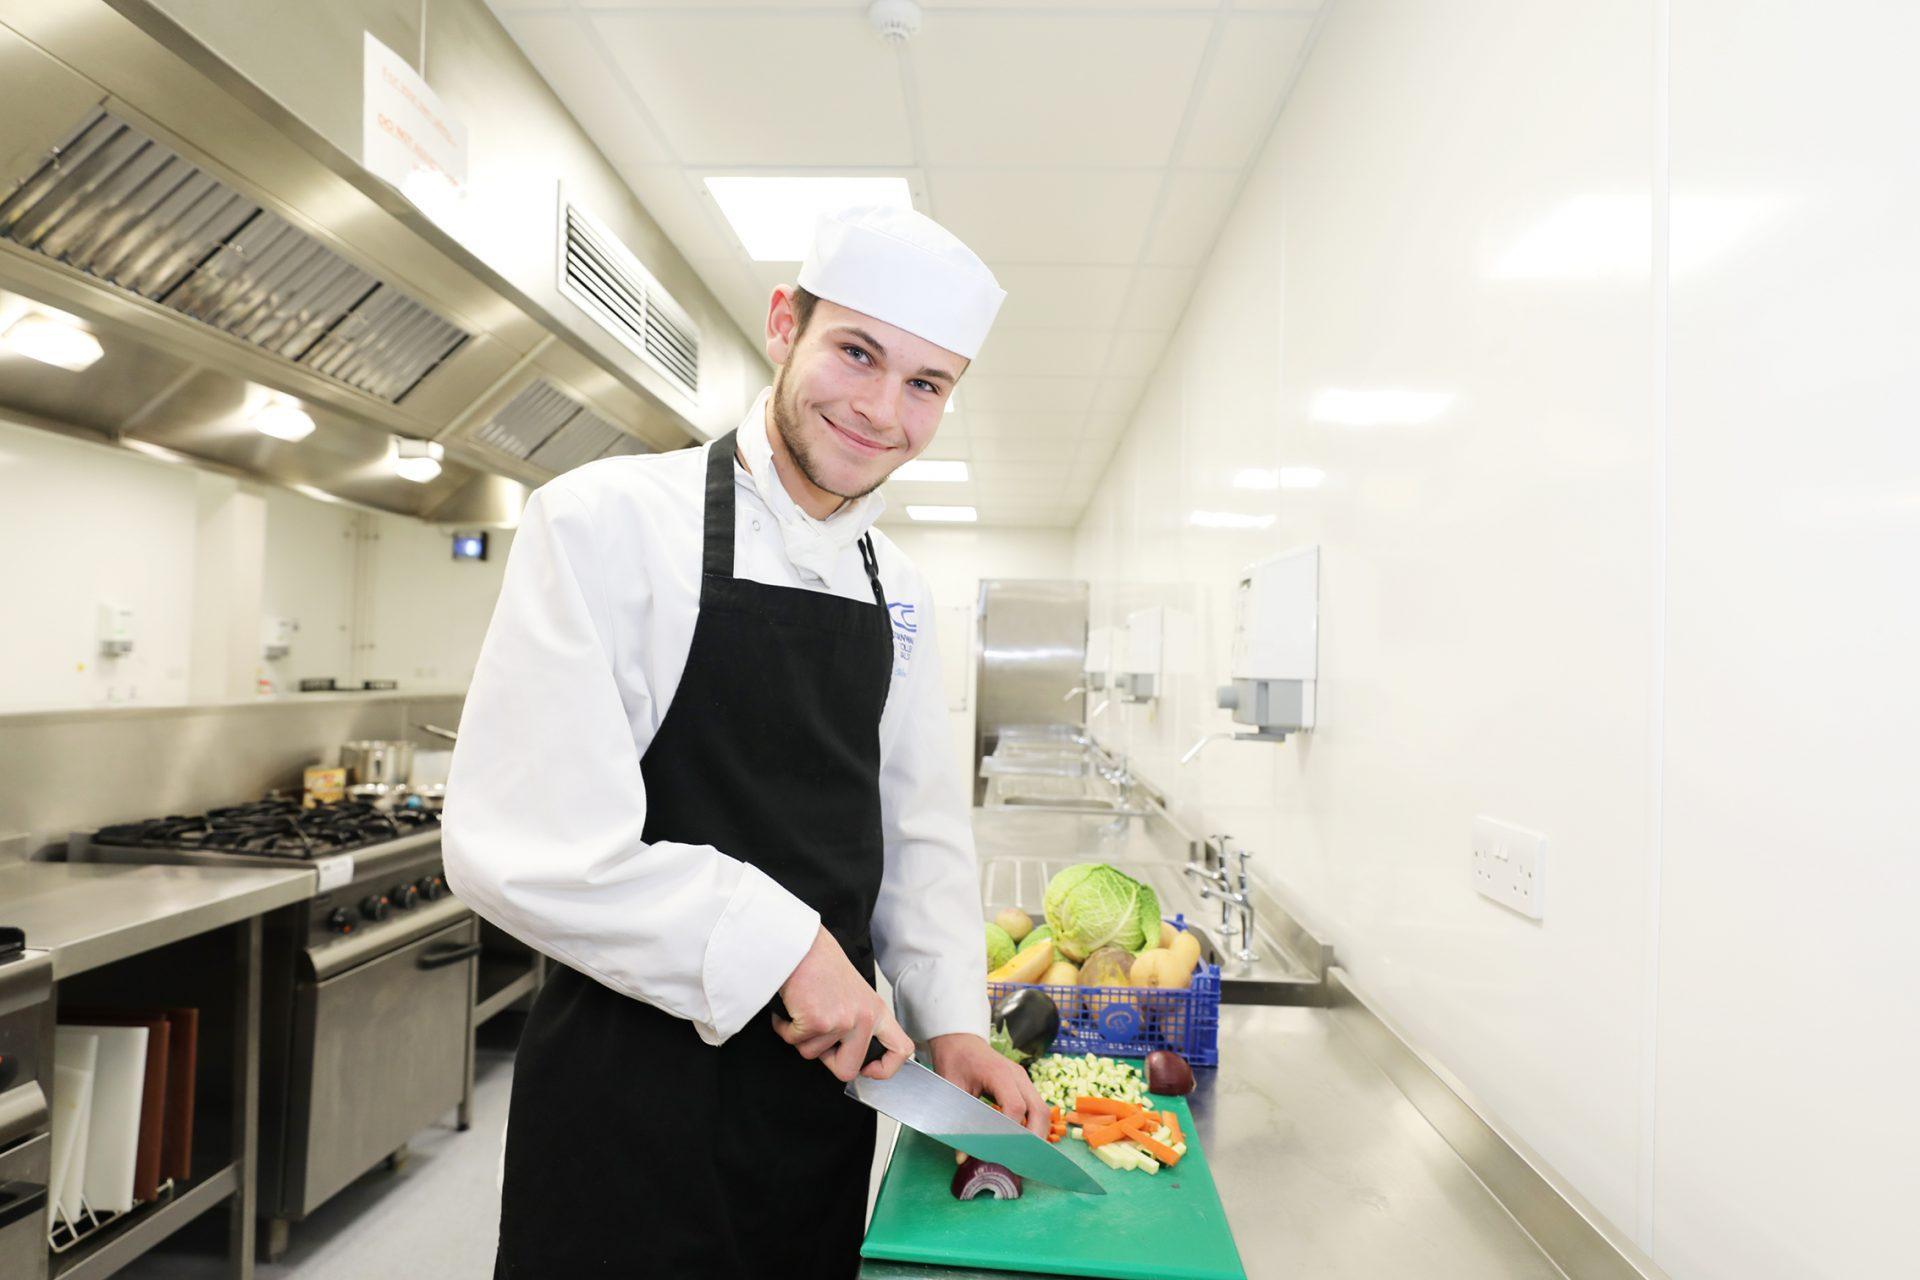 Student chopping onion in training kitchen at Cornwall College